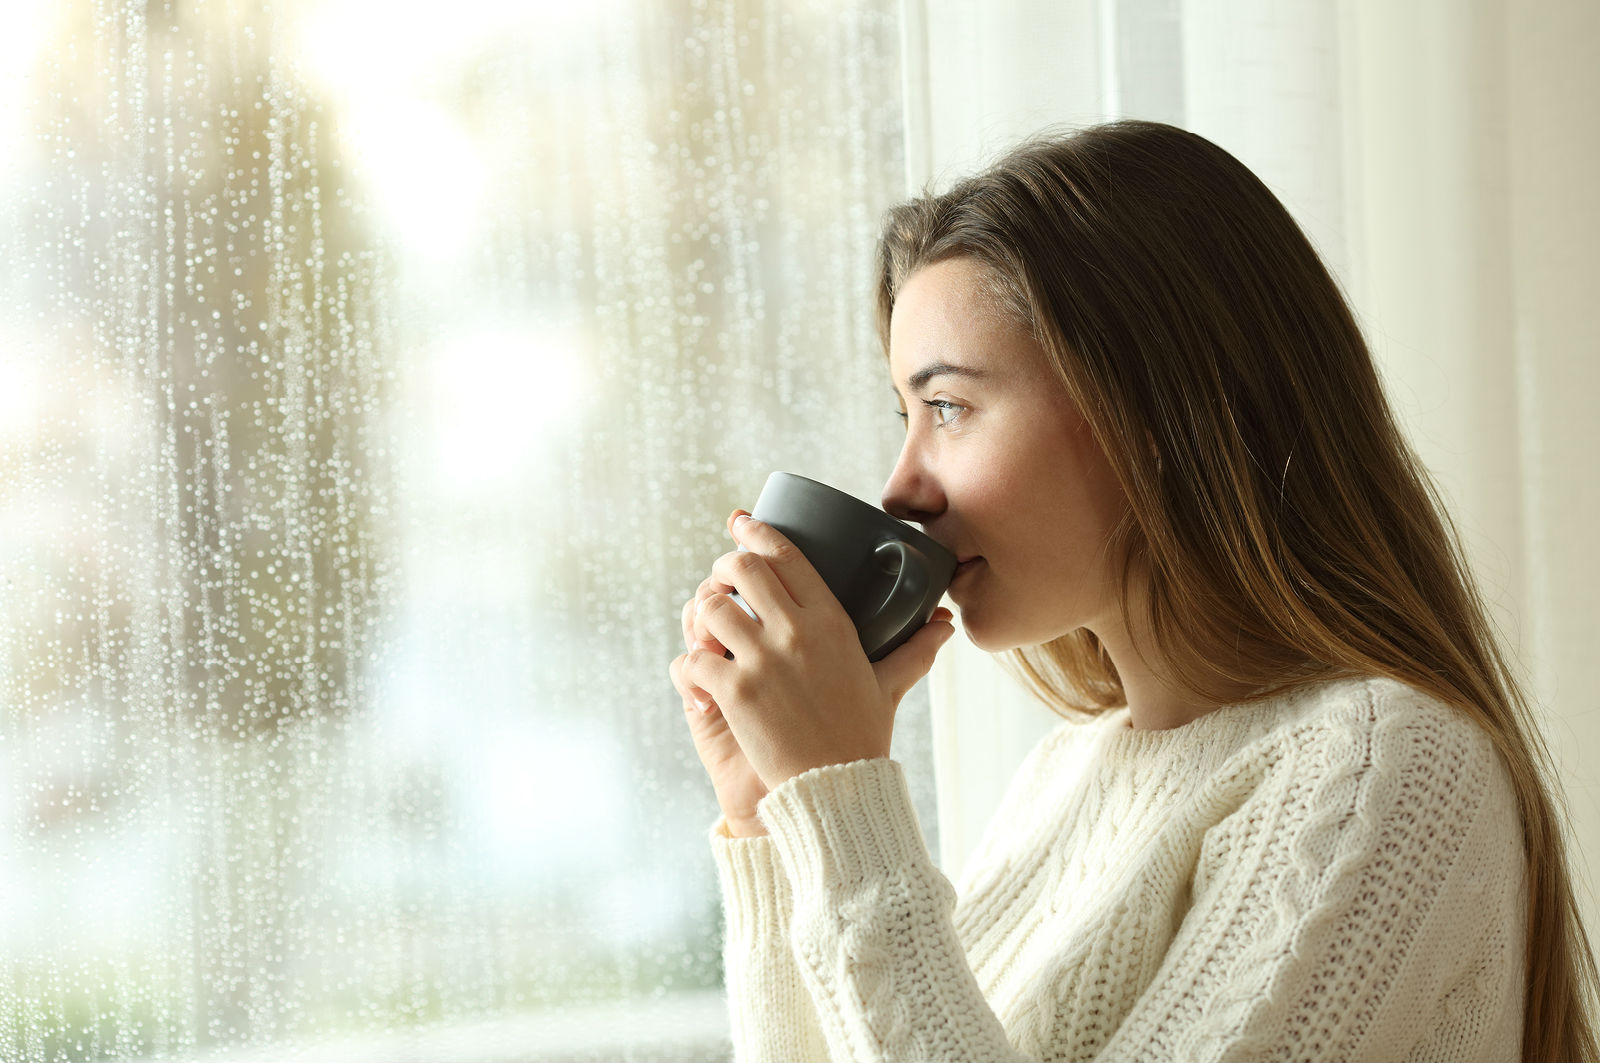 Having A Bad Day? Science-Proven Ways To Turn It Around